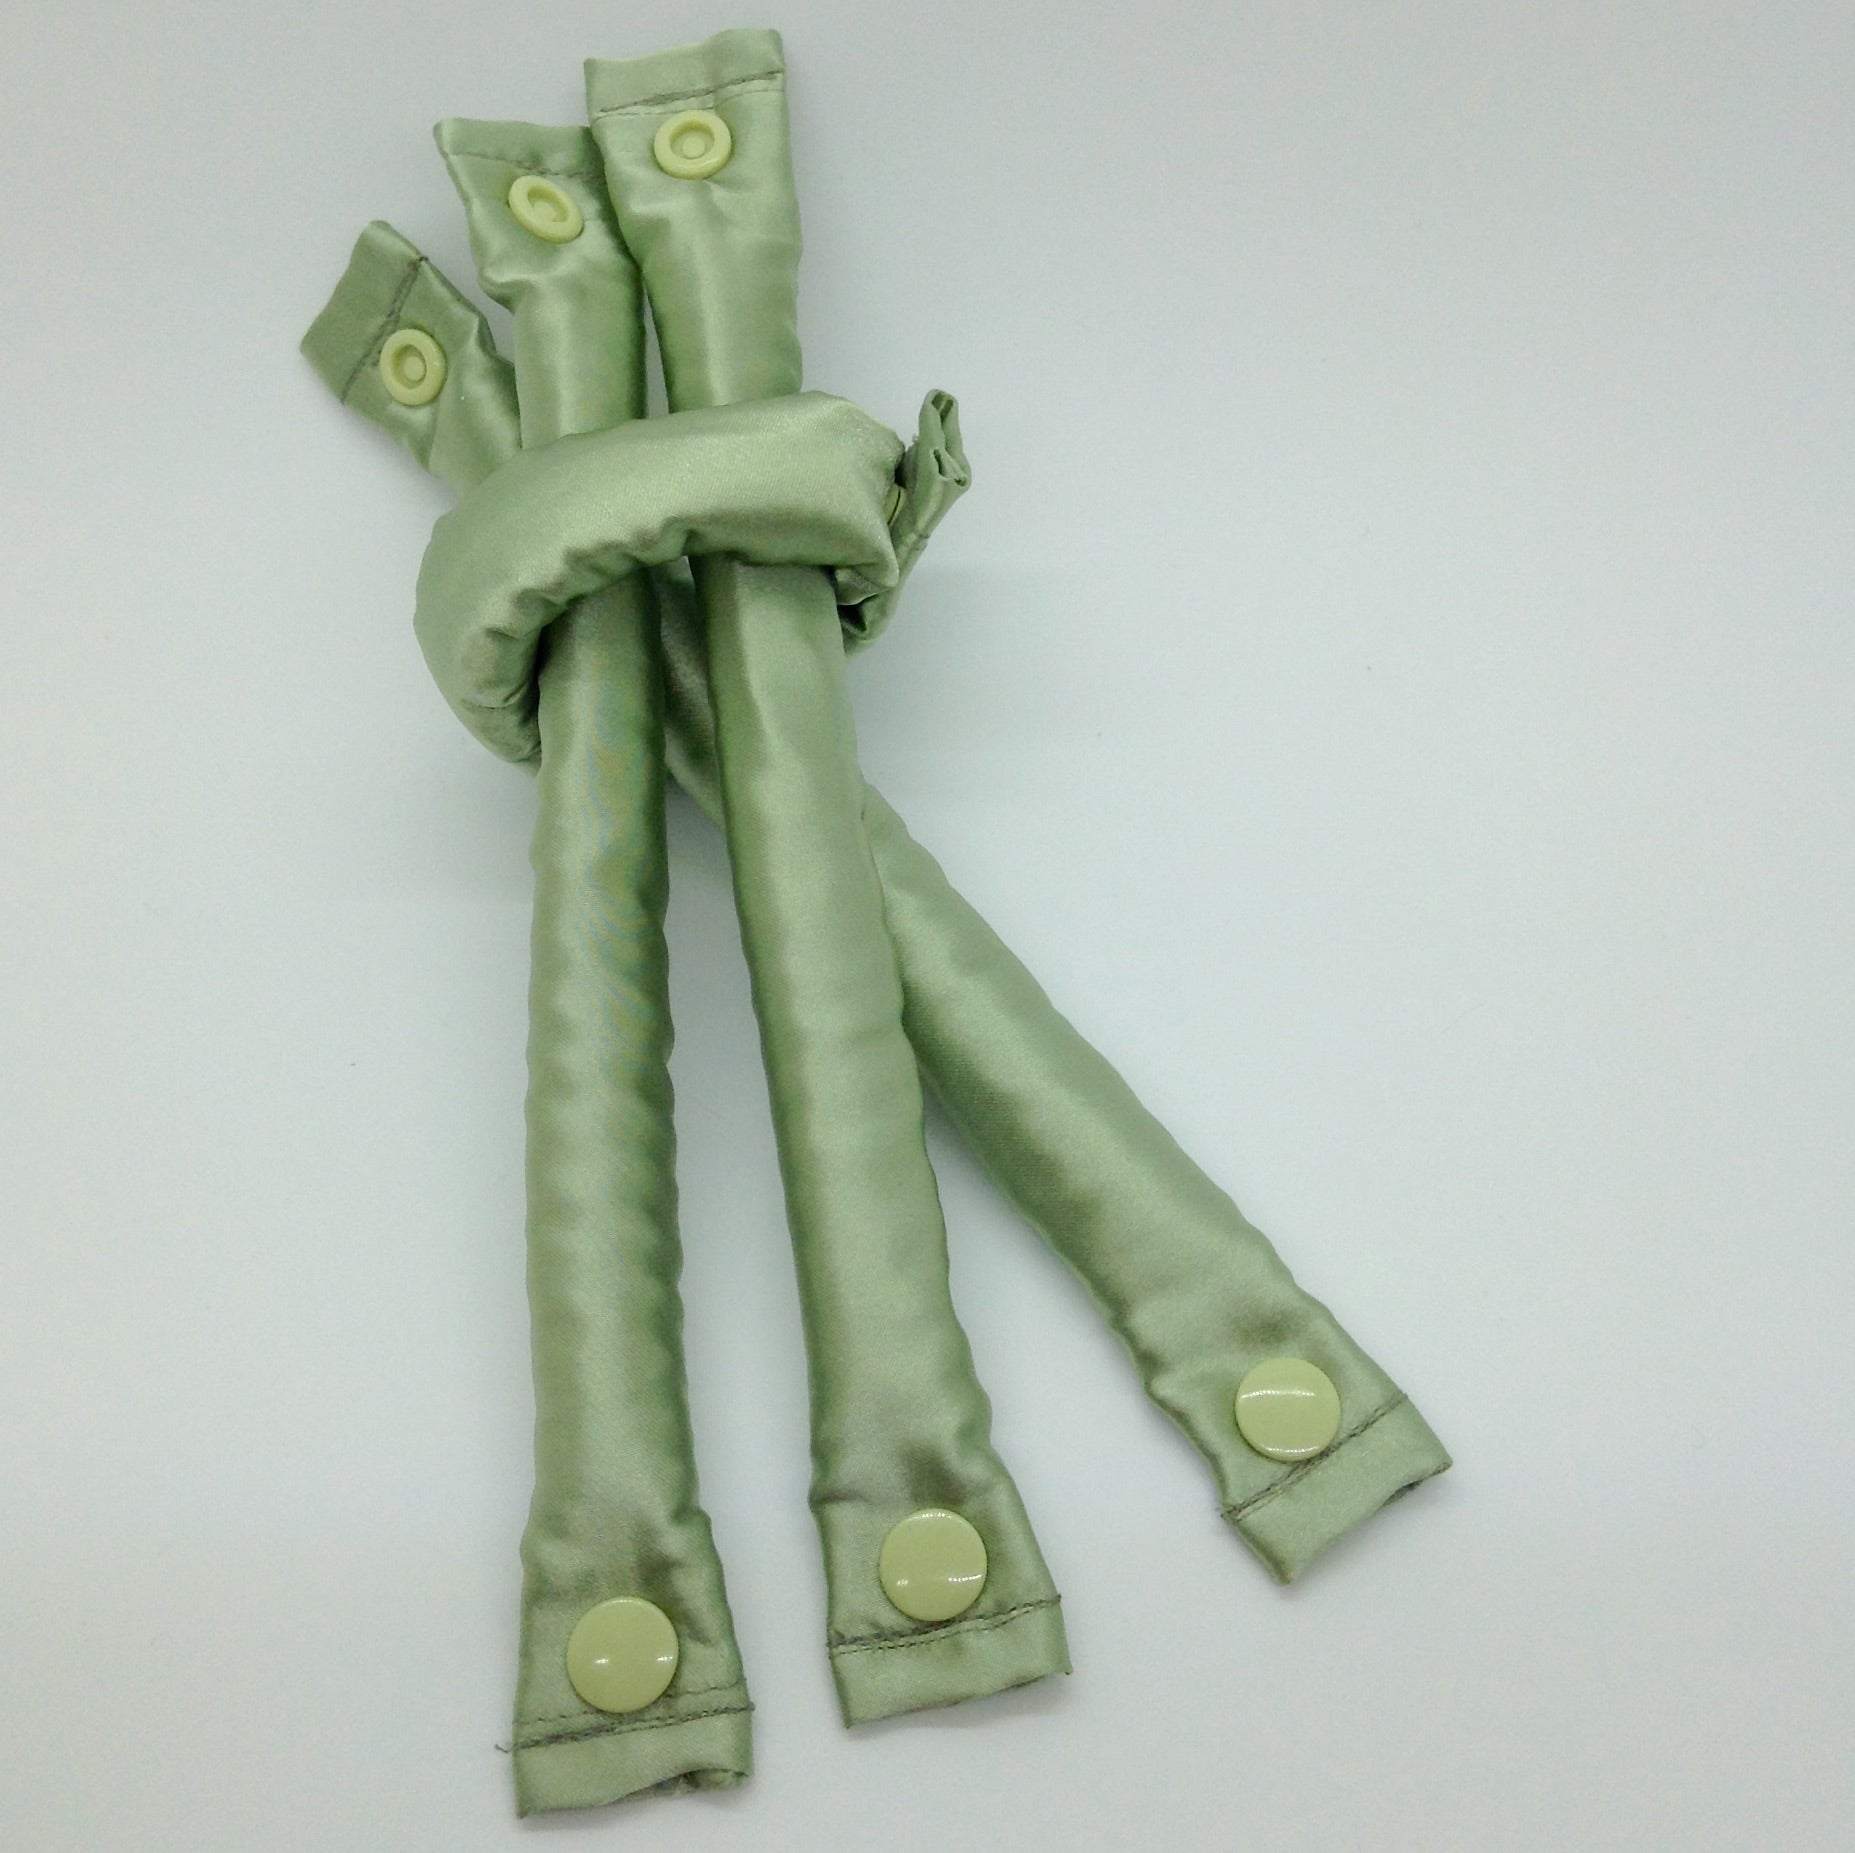 Sage Green fabric hair rollers - Curlers - Hair Accessories set - Bendy Rollers - My Easy Curls